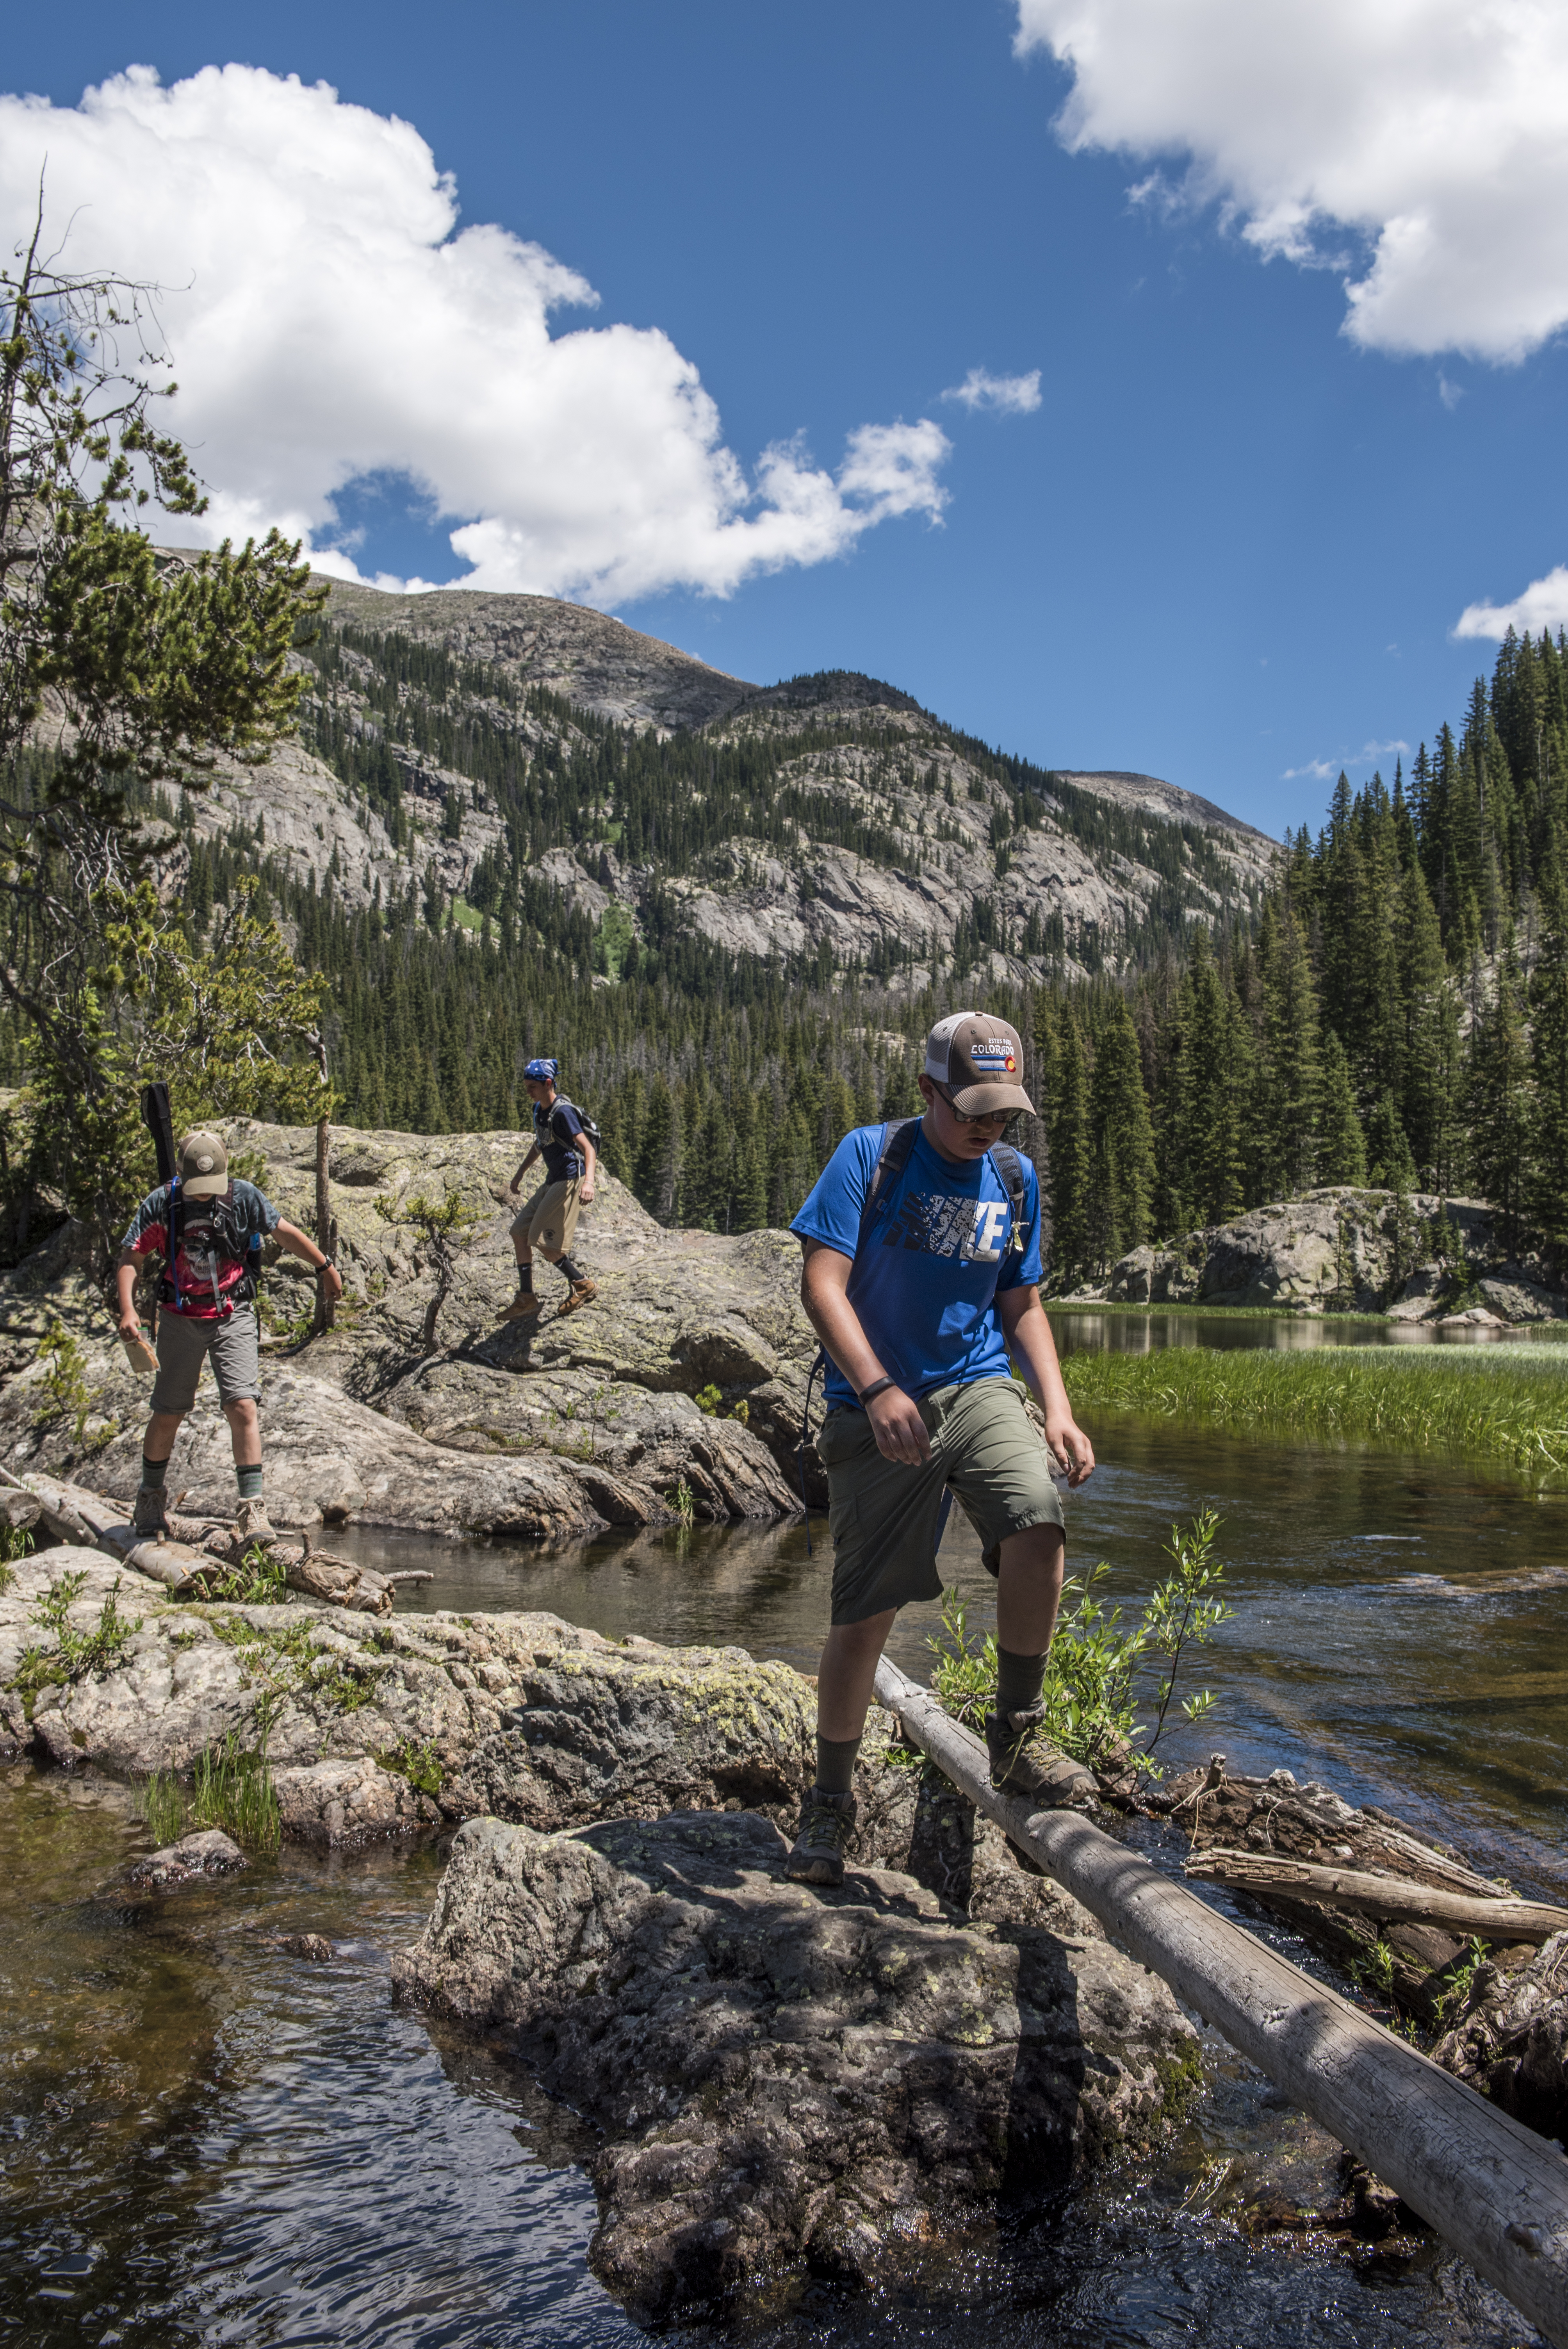 Scouts from PA explore Lone Pine Lake in Rocky Mountain National Park, during a two week adventure trip to Colorado